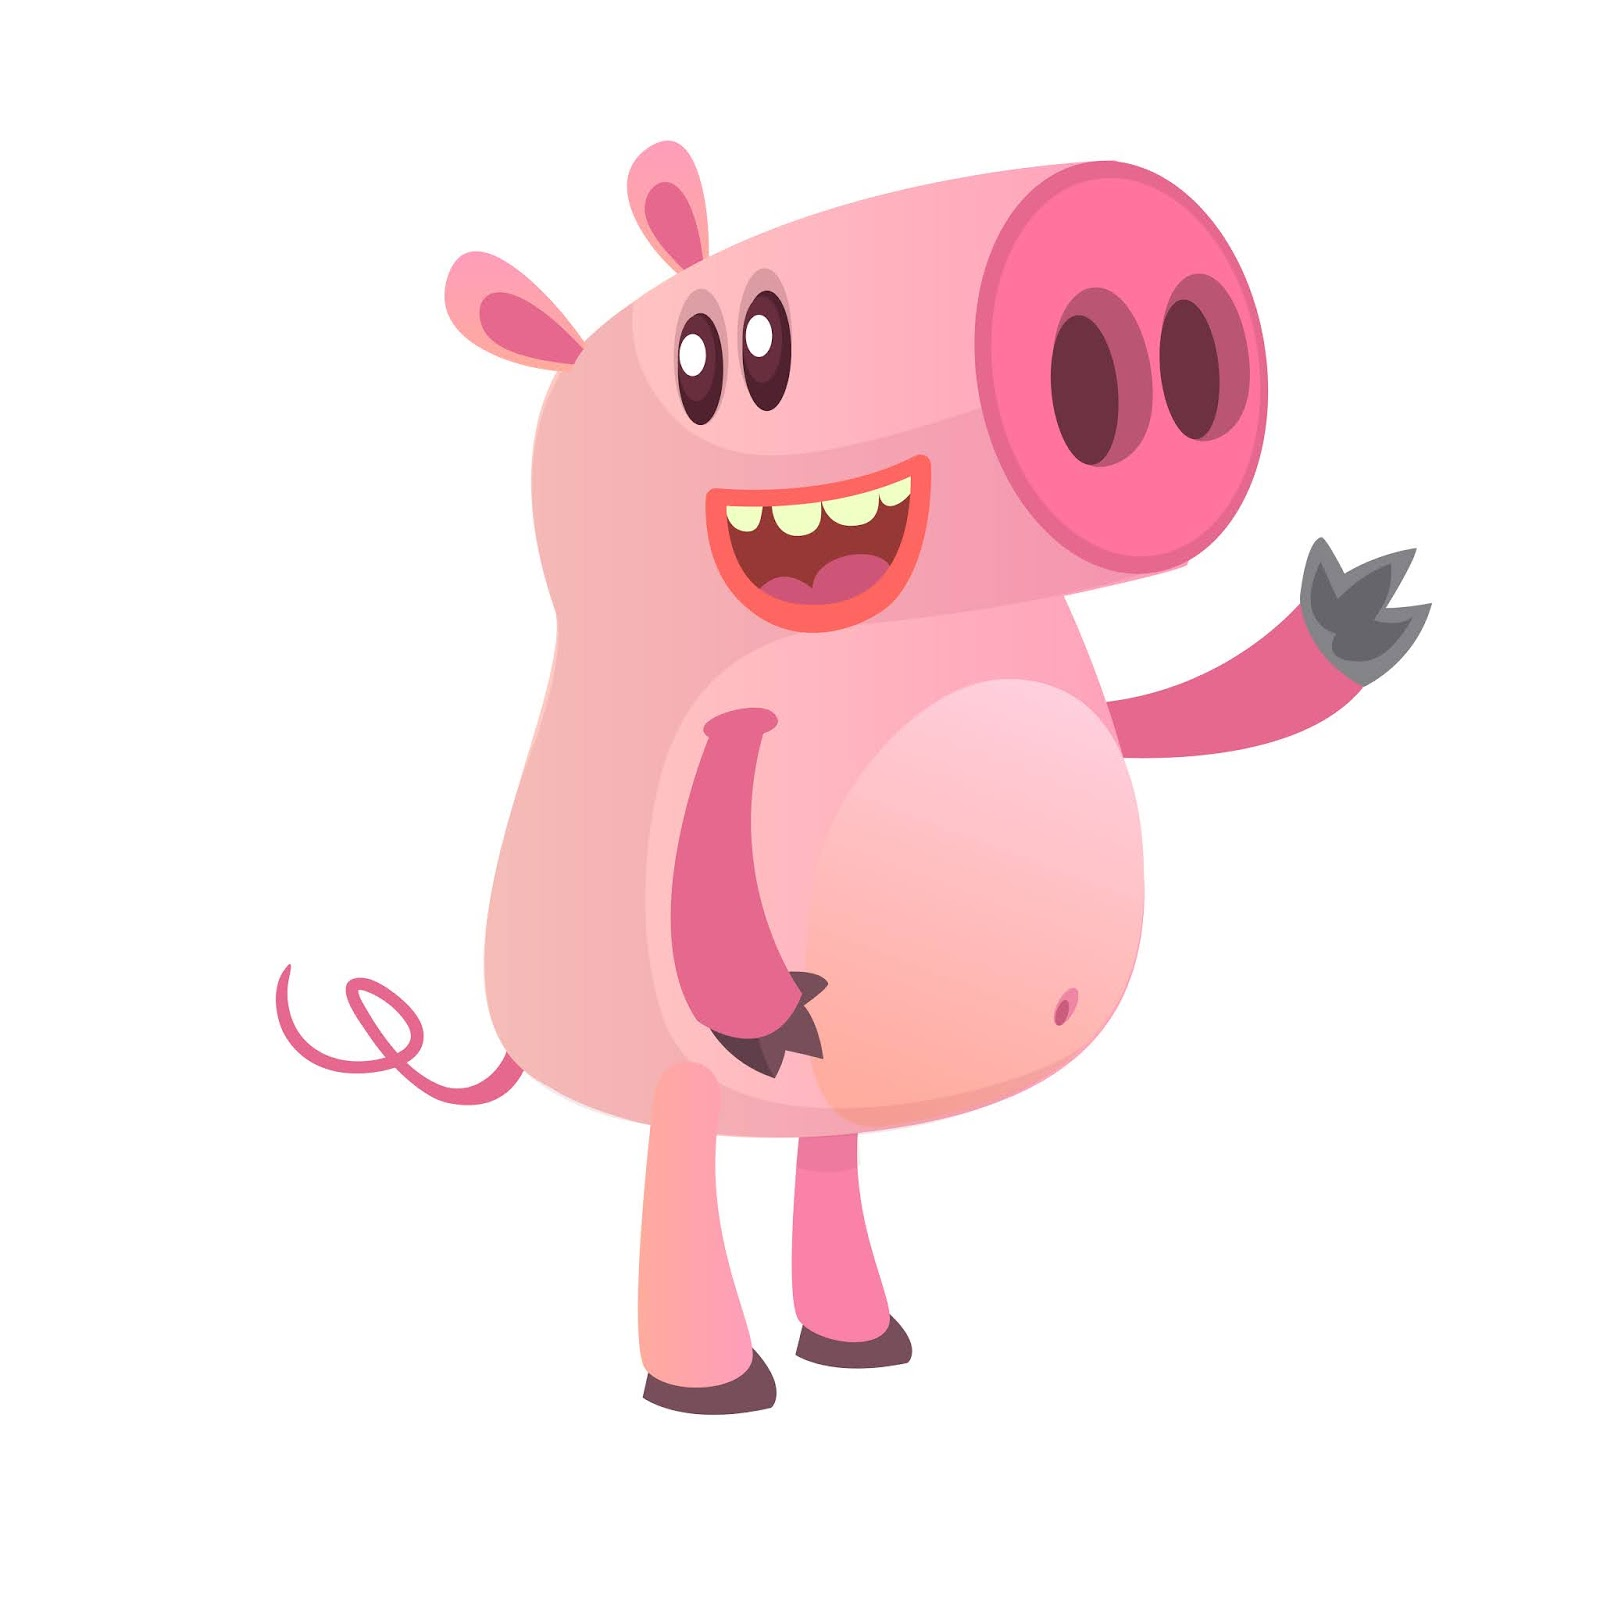 Pig Free Download Vector CDR, AI, EPS and PNG Formats